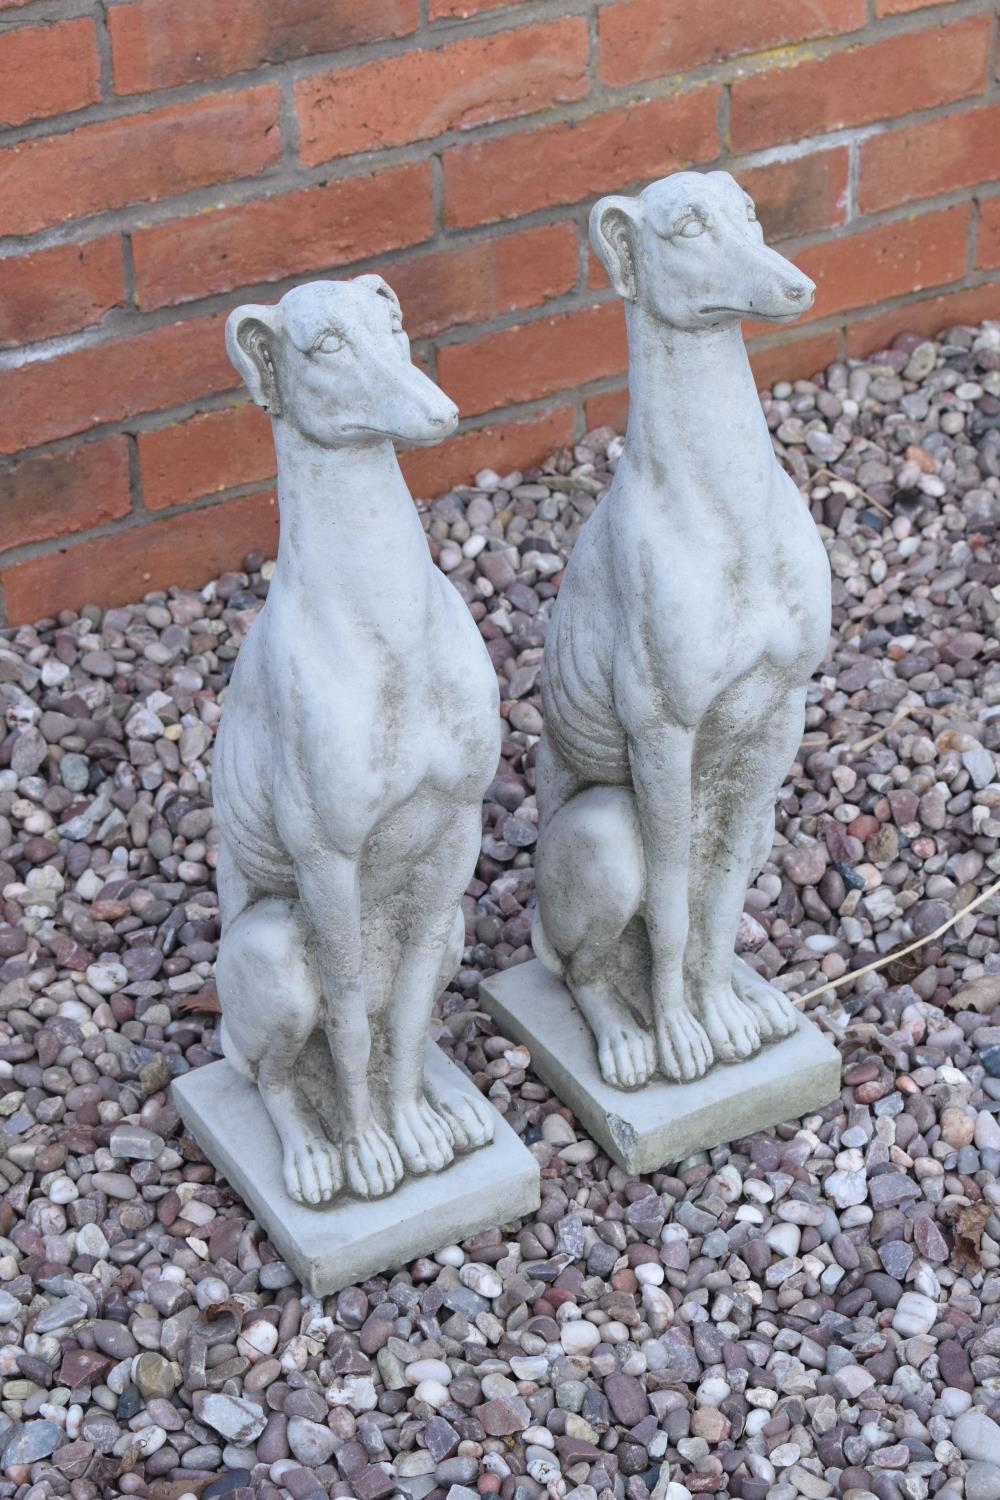 Reconstituted stone models of greyhounds. 54cm tall. Made in England, these items are frost and